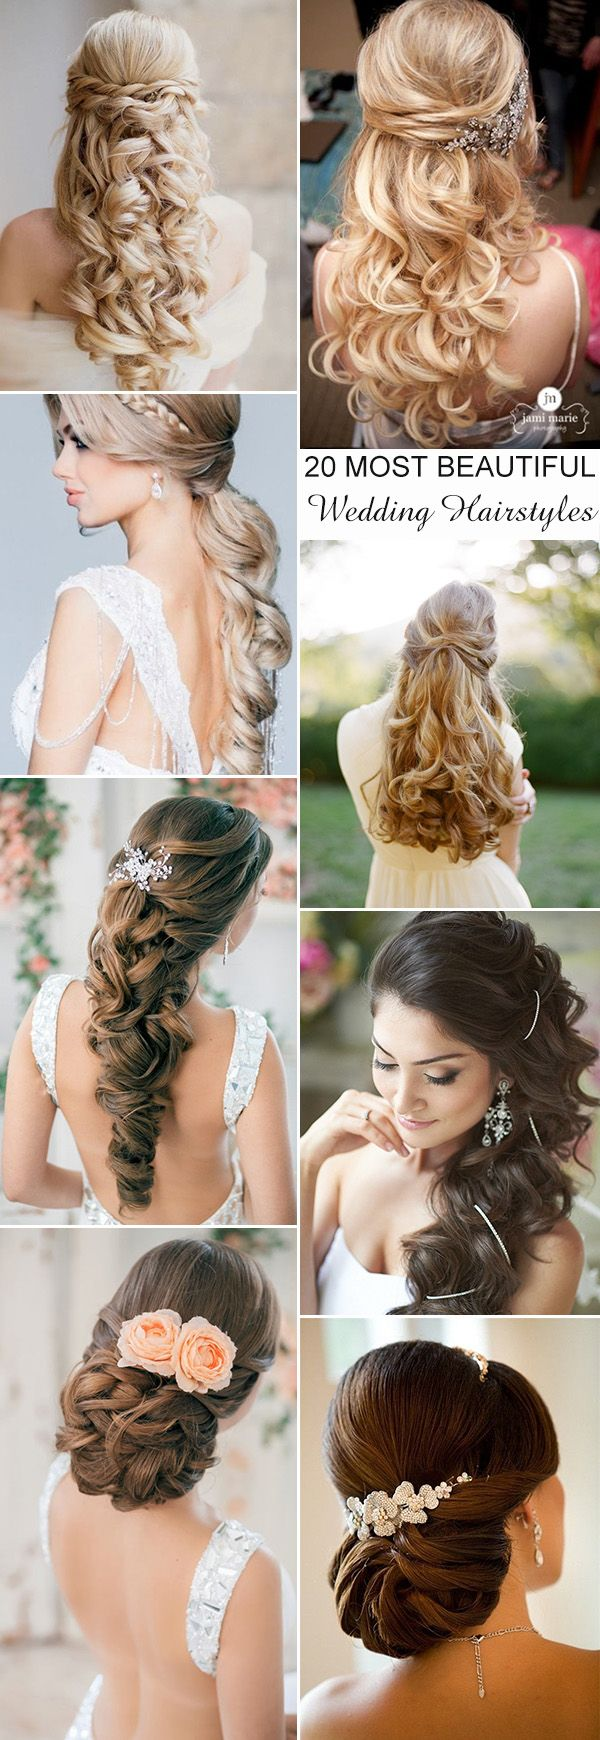 37 Pretty Wedding Hairstyles For Brides With Long Hair: 20 Most Elegant And Beautiful Wedding Hairstyles